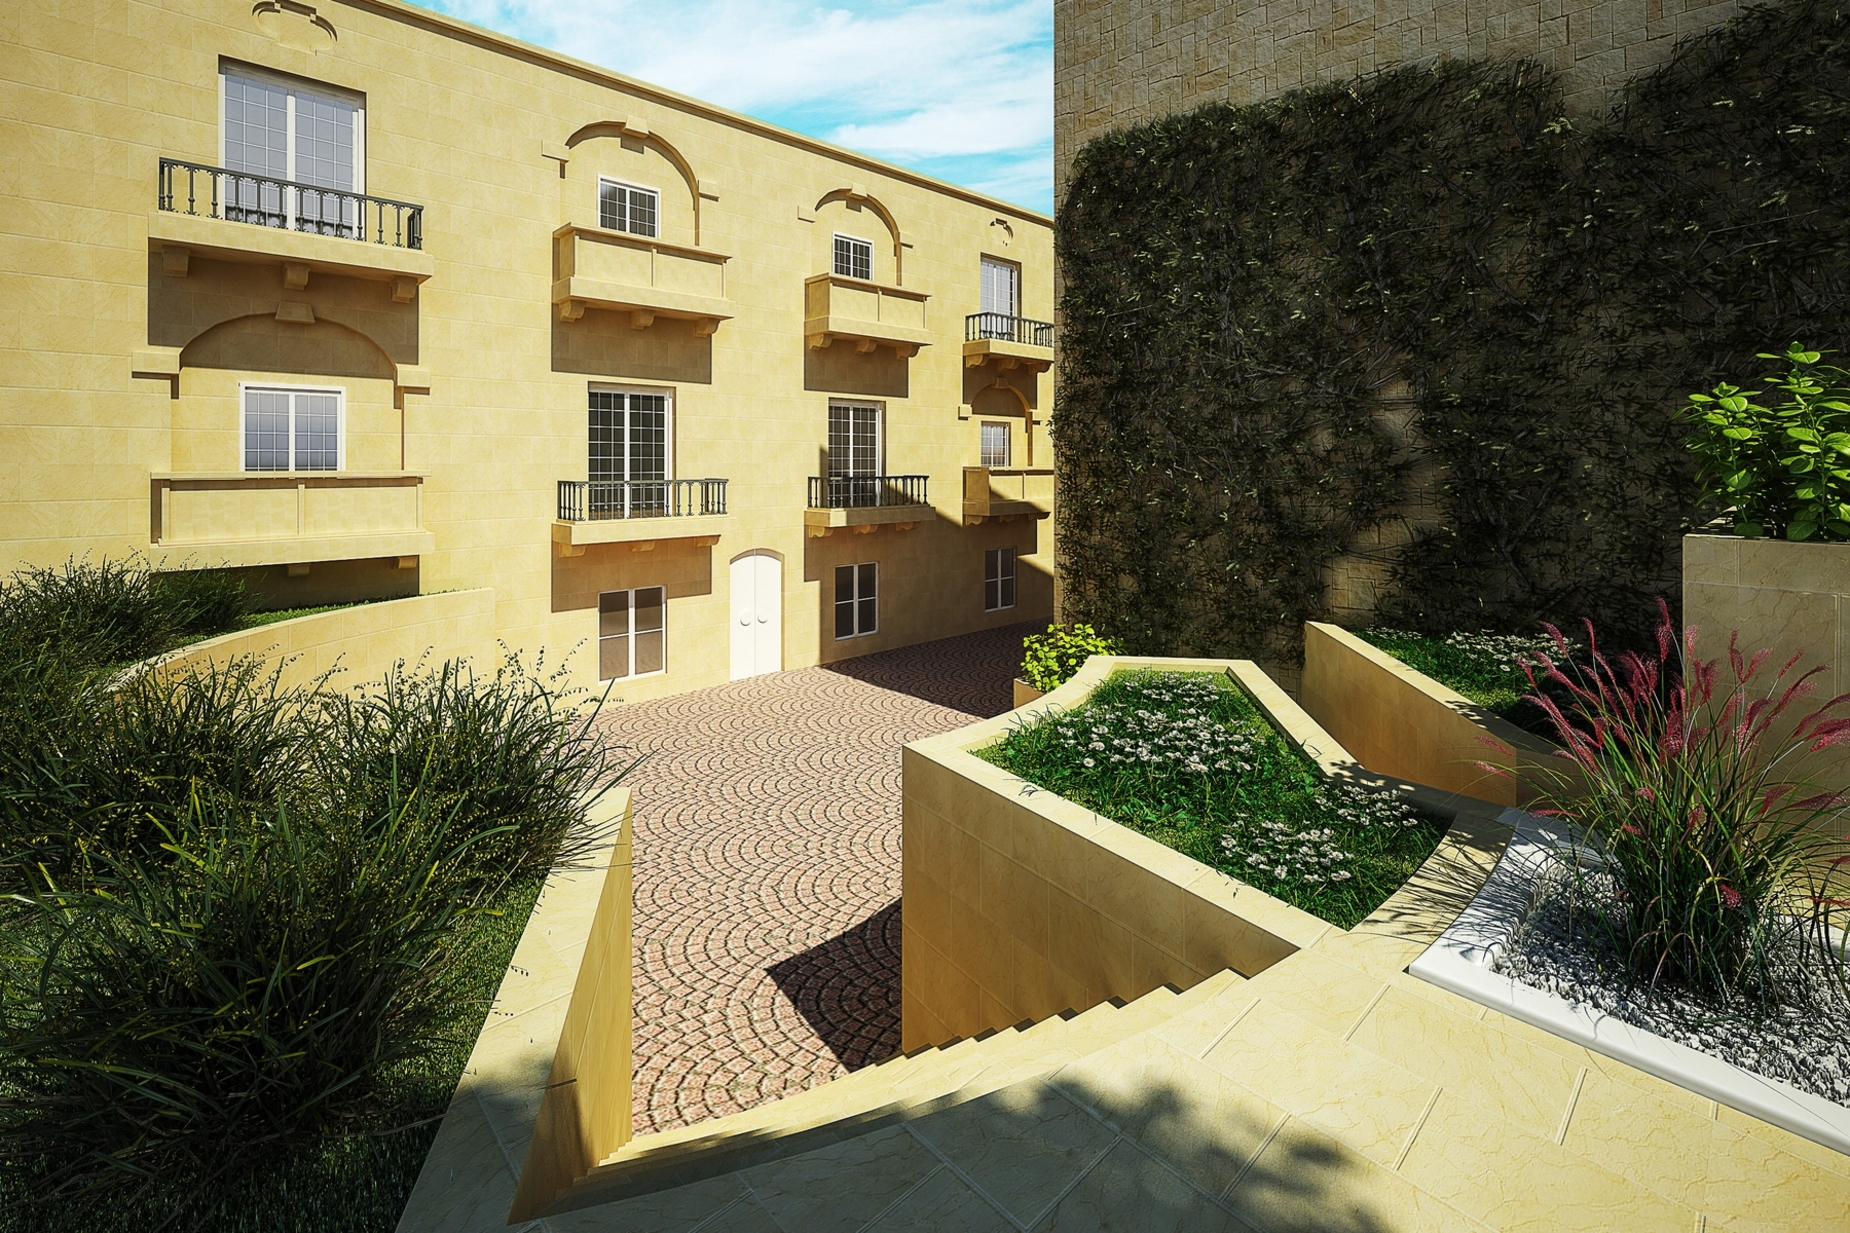 3 bed Apartment For Sale in Xaghra, Xaghra - thumb 2